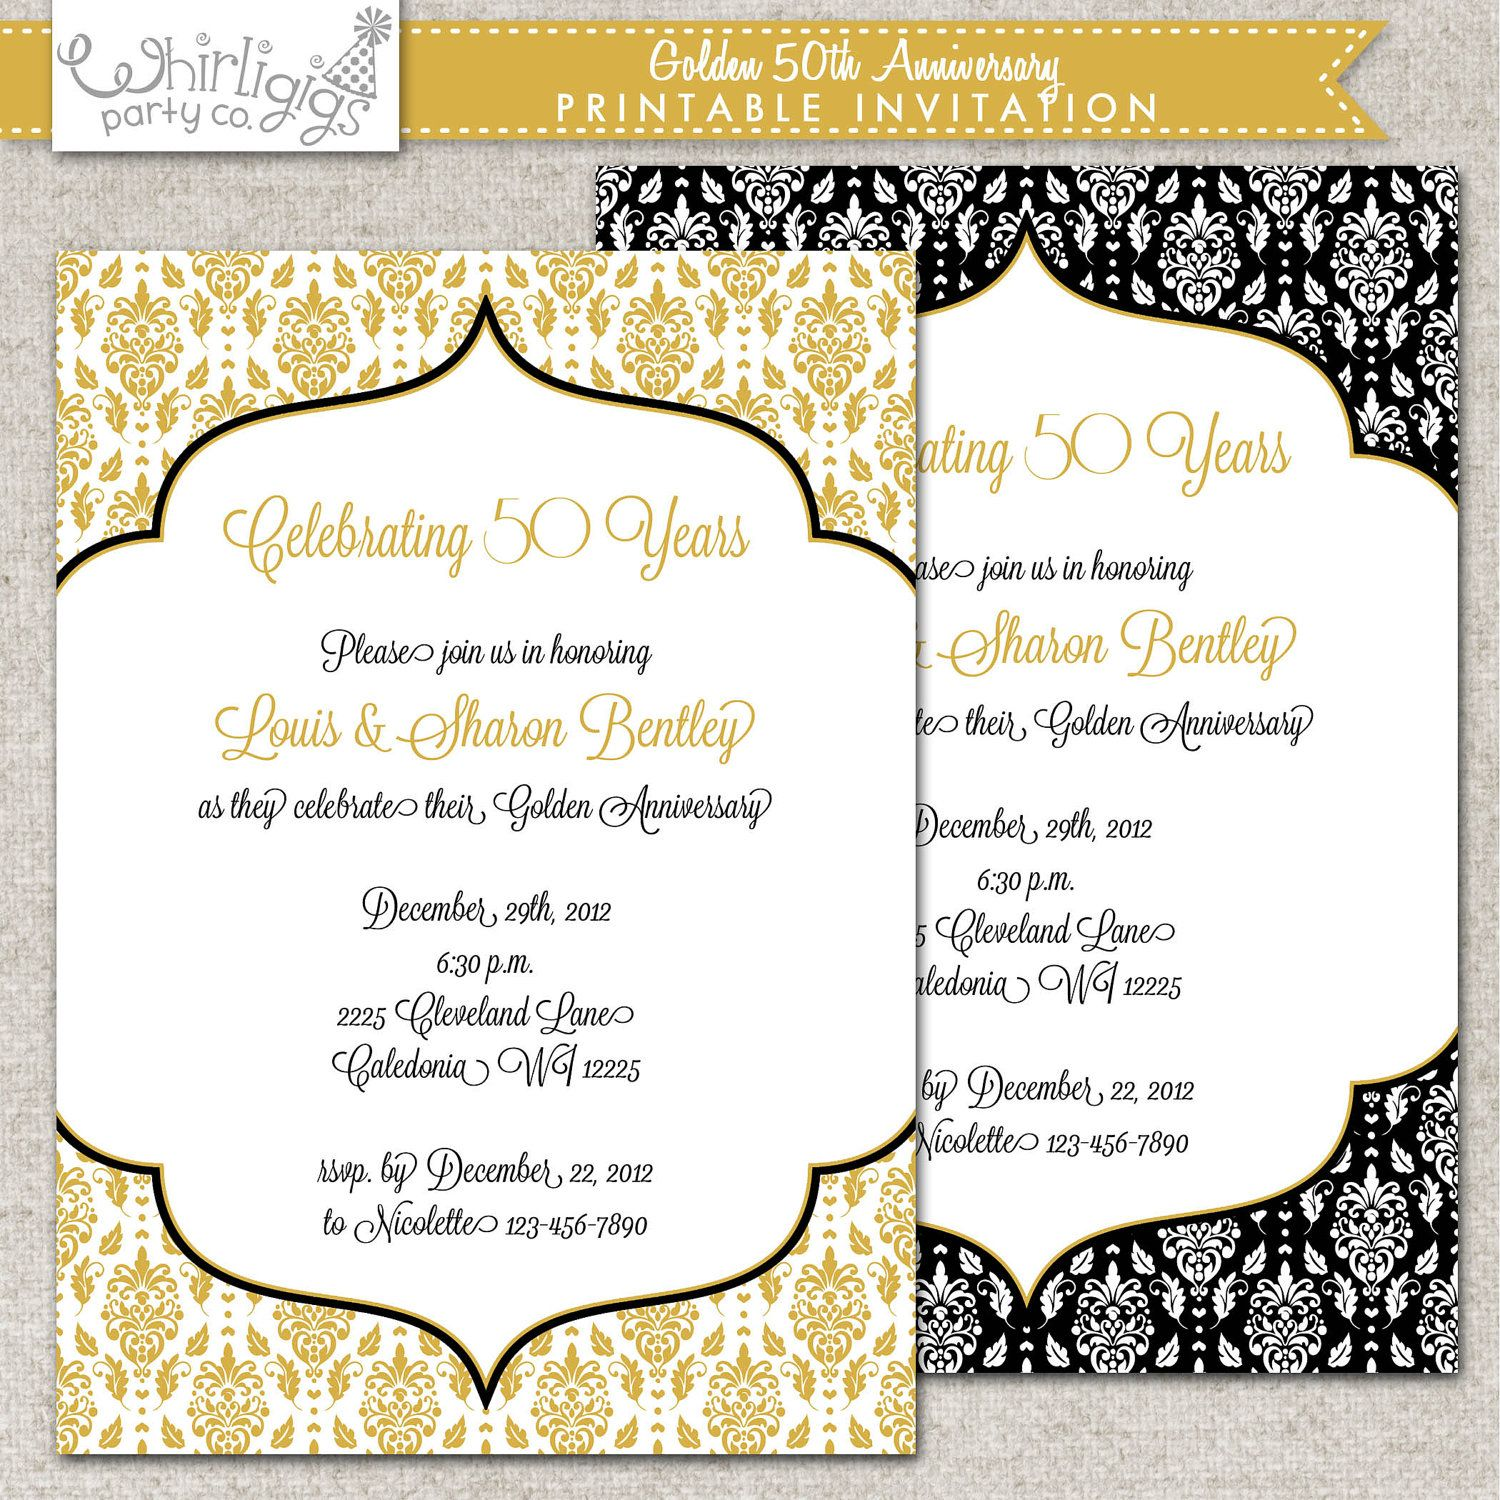 50th Wedding Anniversary Invitation Ideas: 50th Anniversary Invitation- Golden Anniversary Invitation